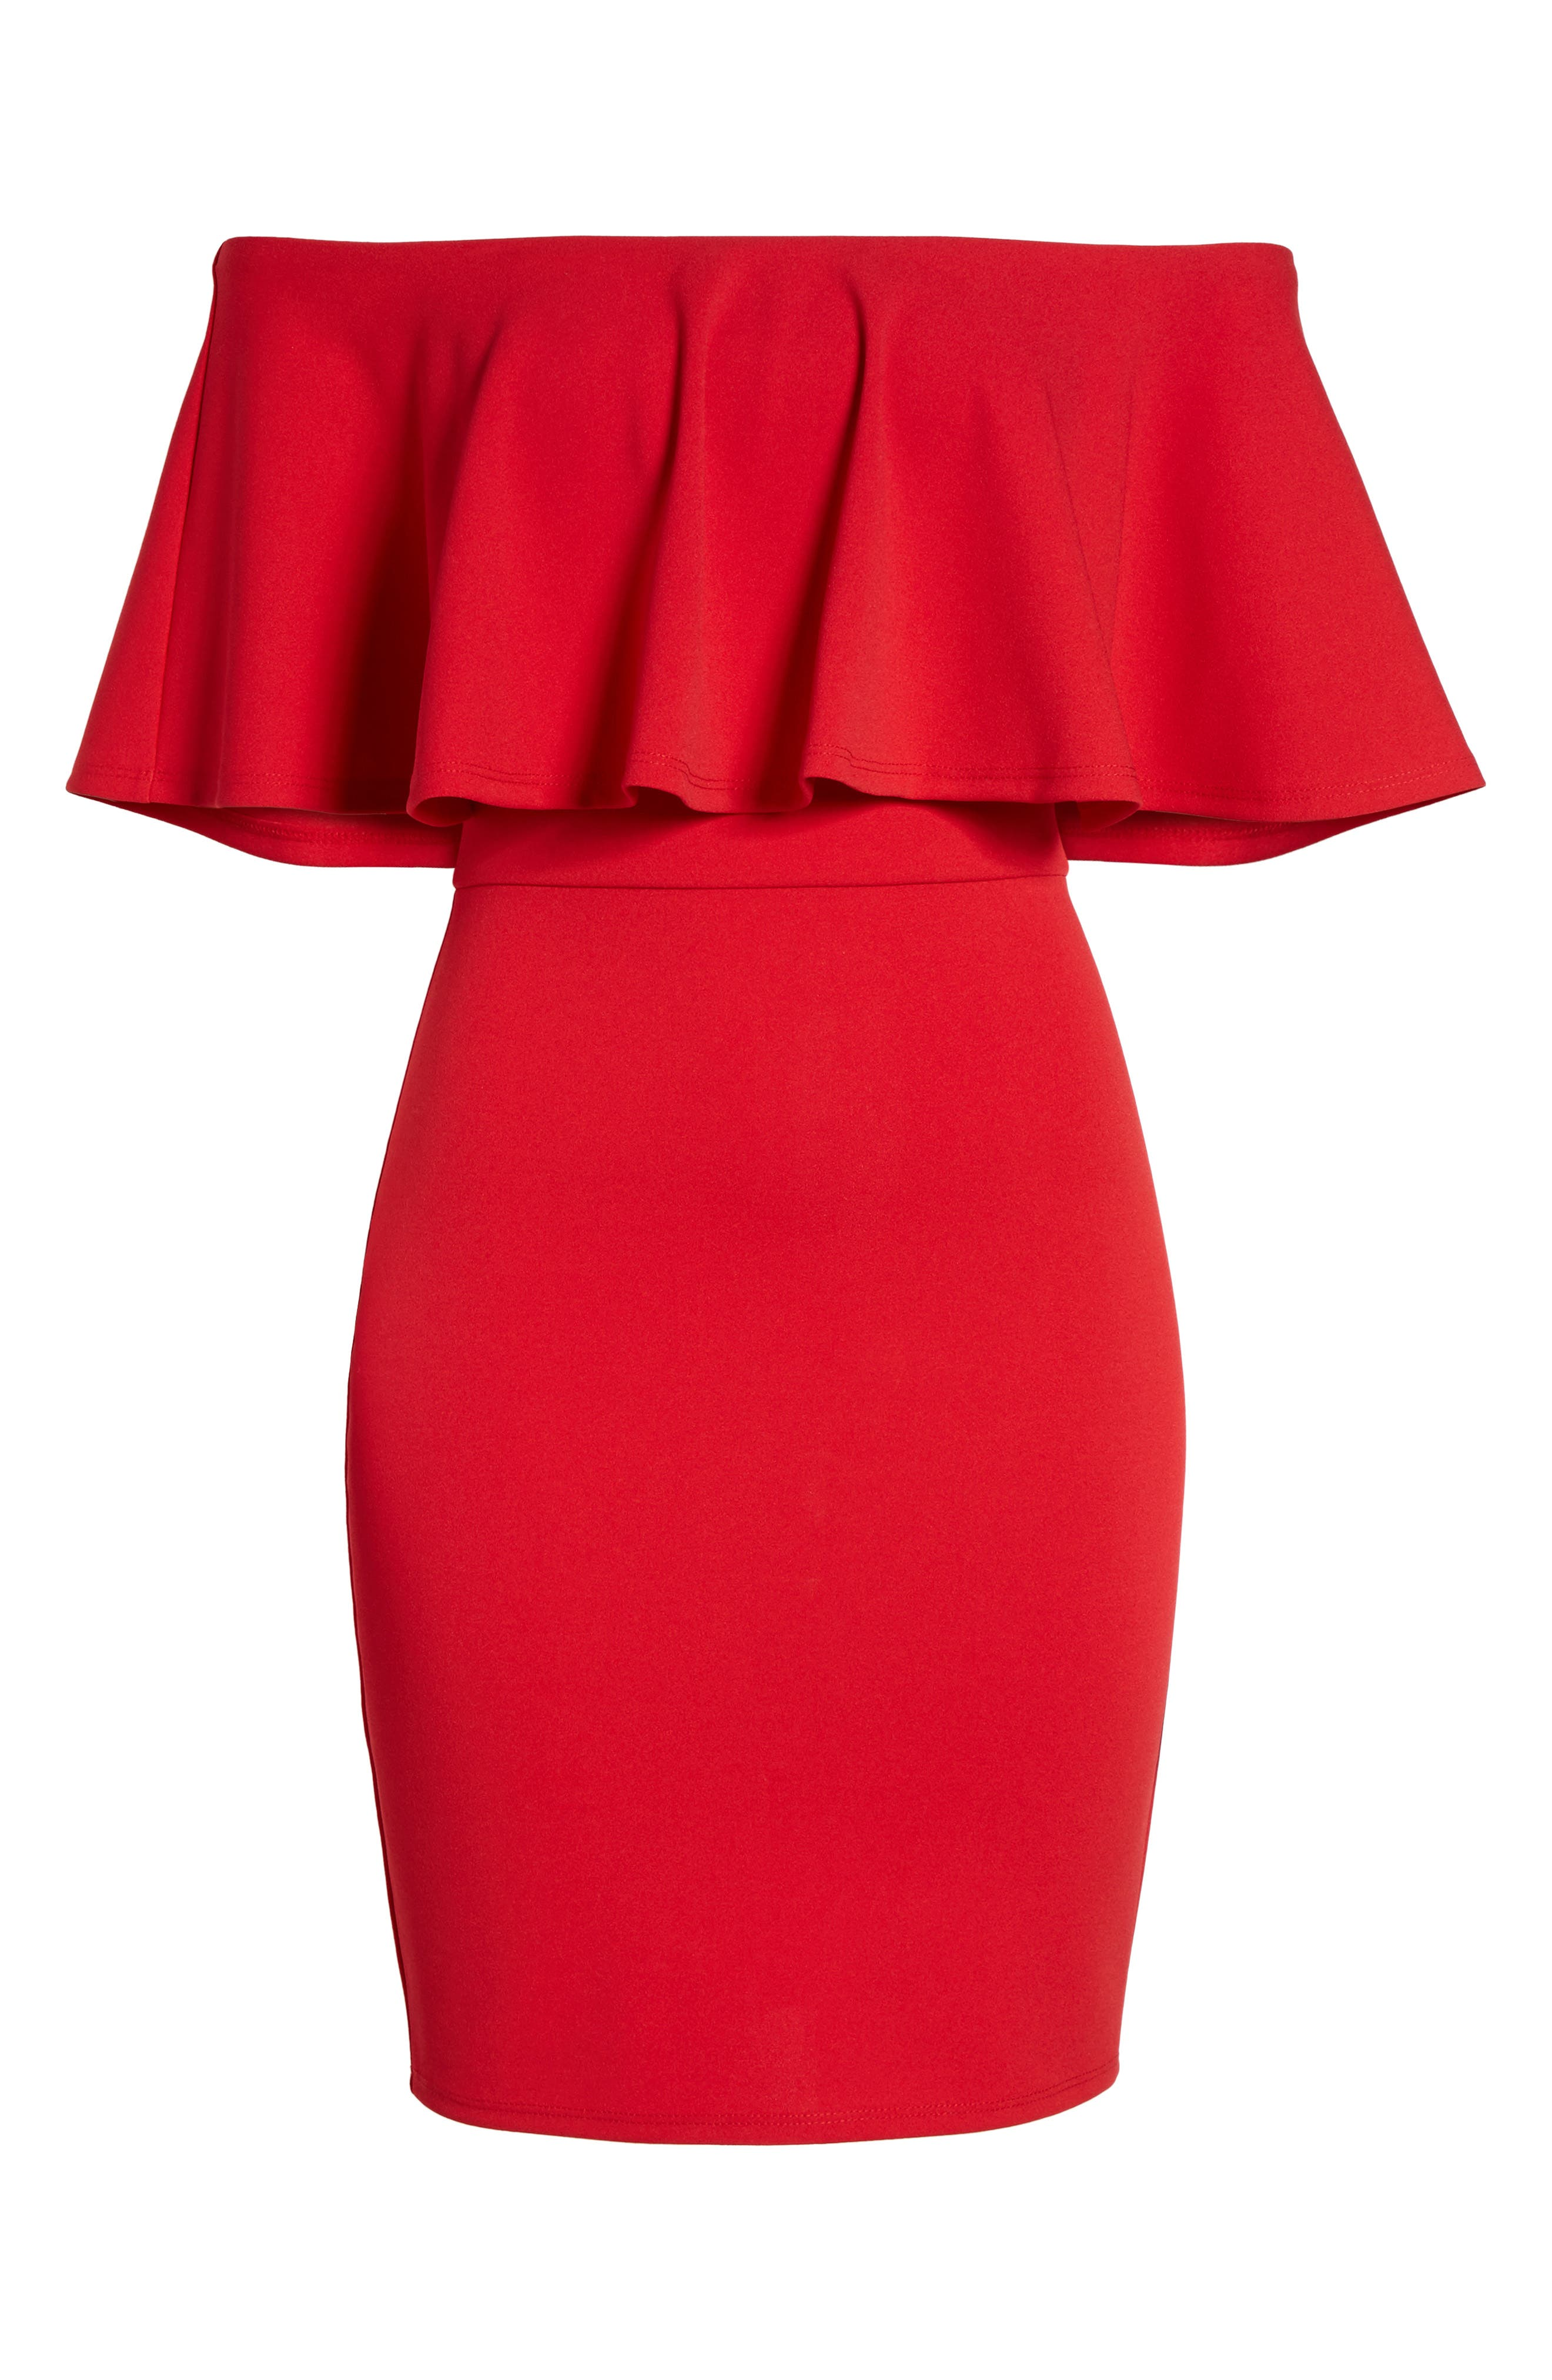 Ruffle Off the Shoulder Body-Con Dress,                             Alternate thumbnail 8, color,                             African Red